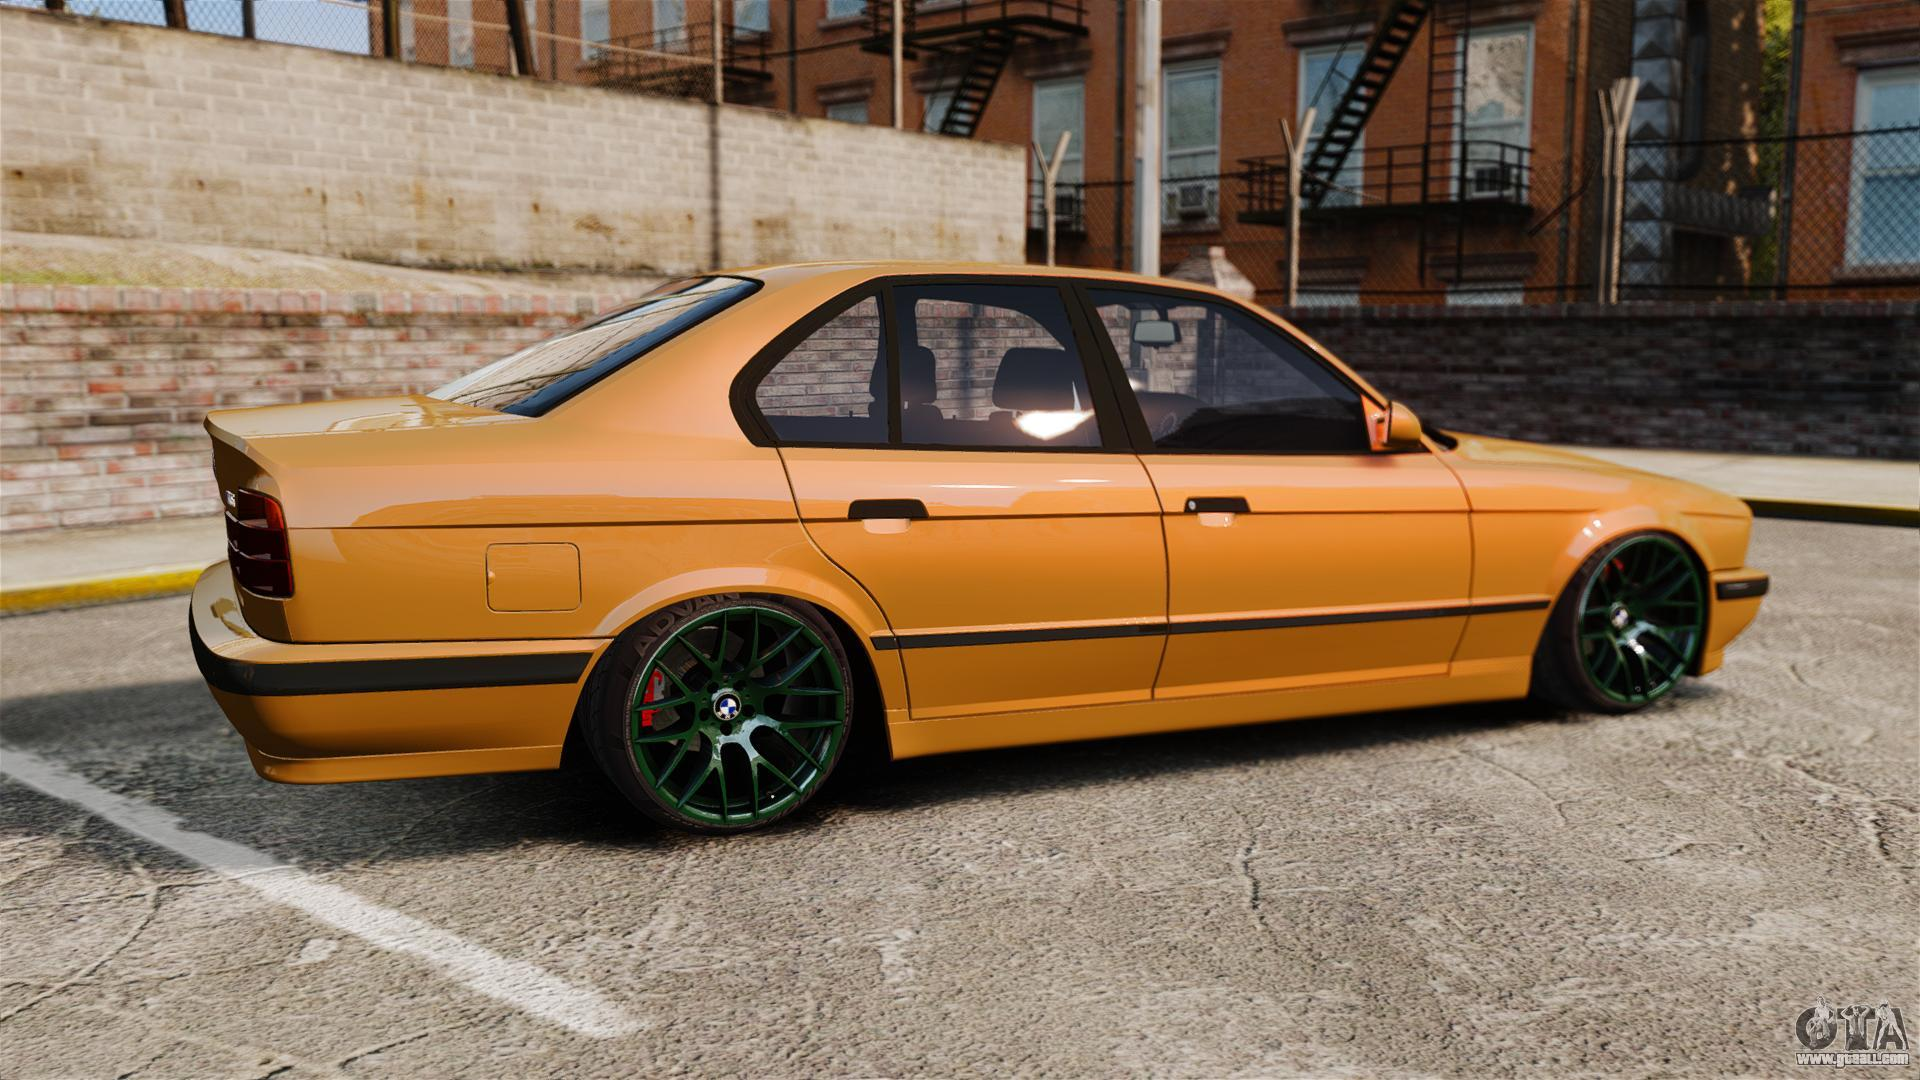 Best Selection Of Pictures For Car 1995 Bmw M5 On All The Internet Enjoy High Quality Gallery Cars And Tell Your Friends In Social Networks